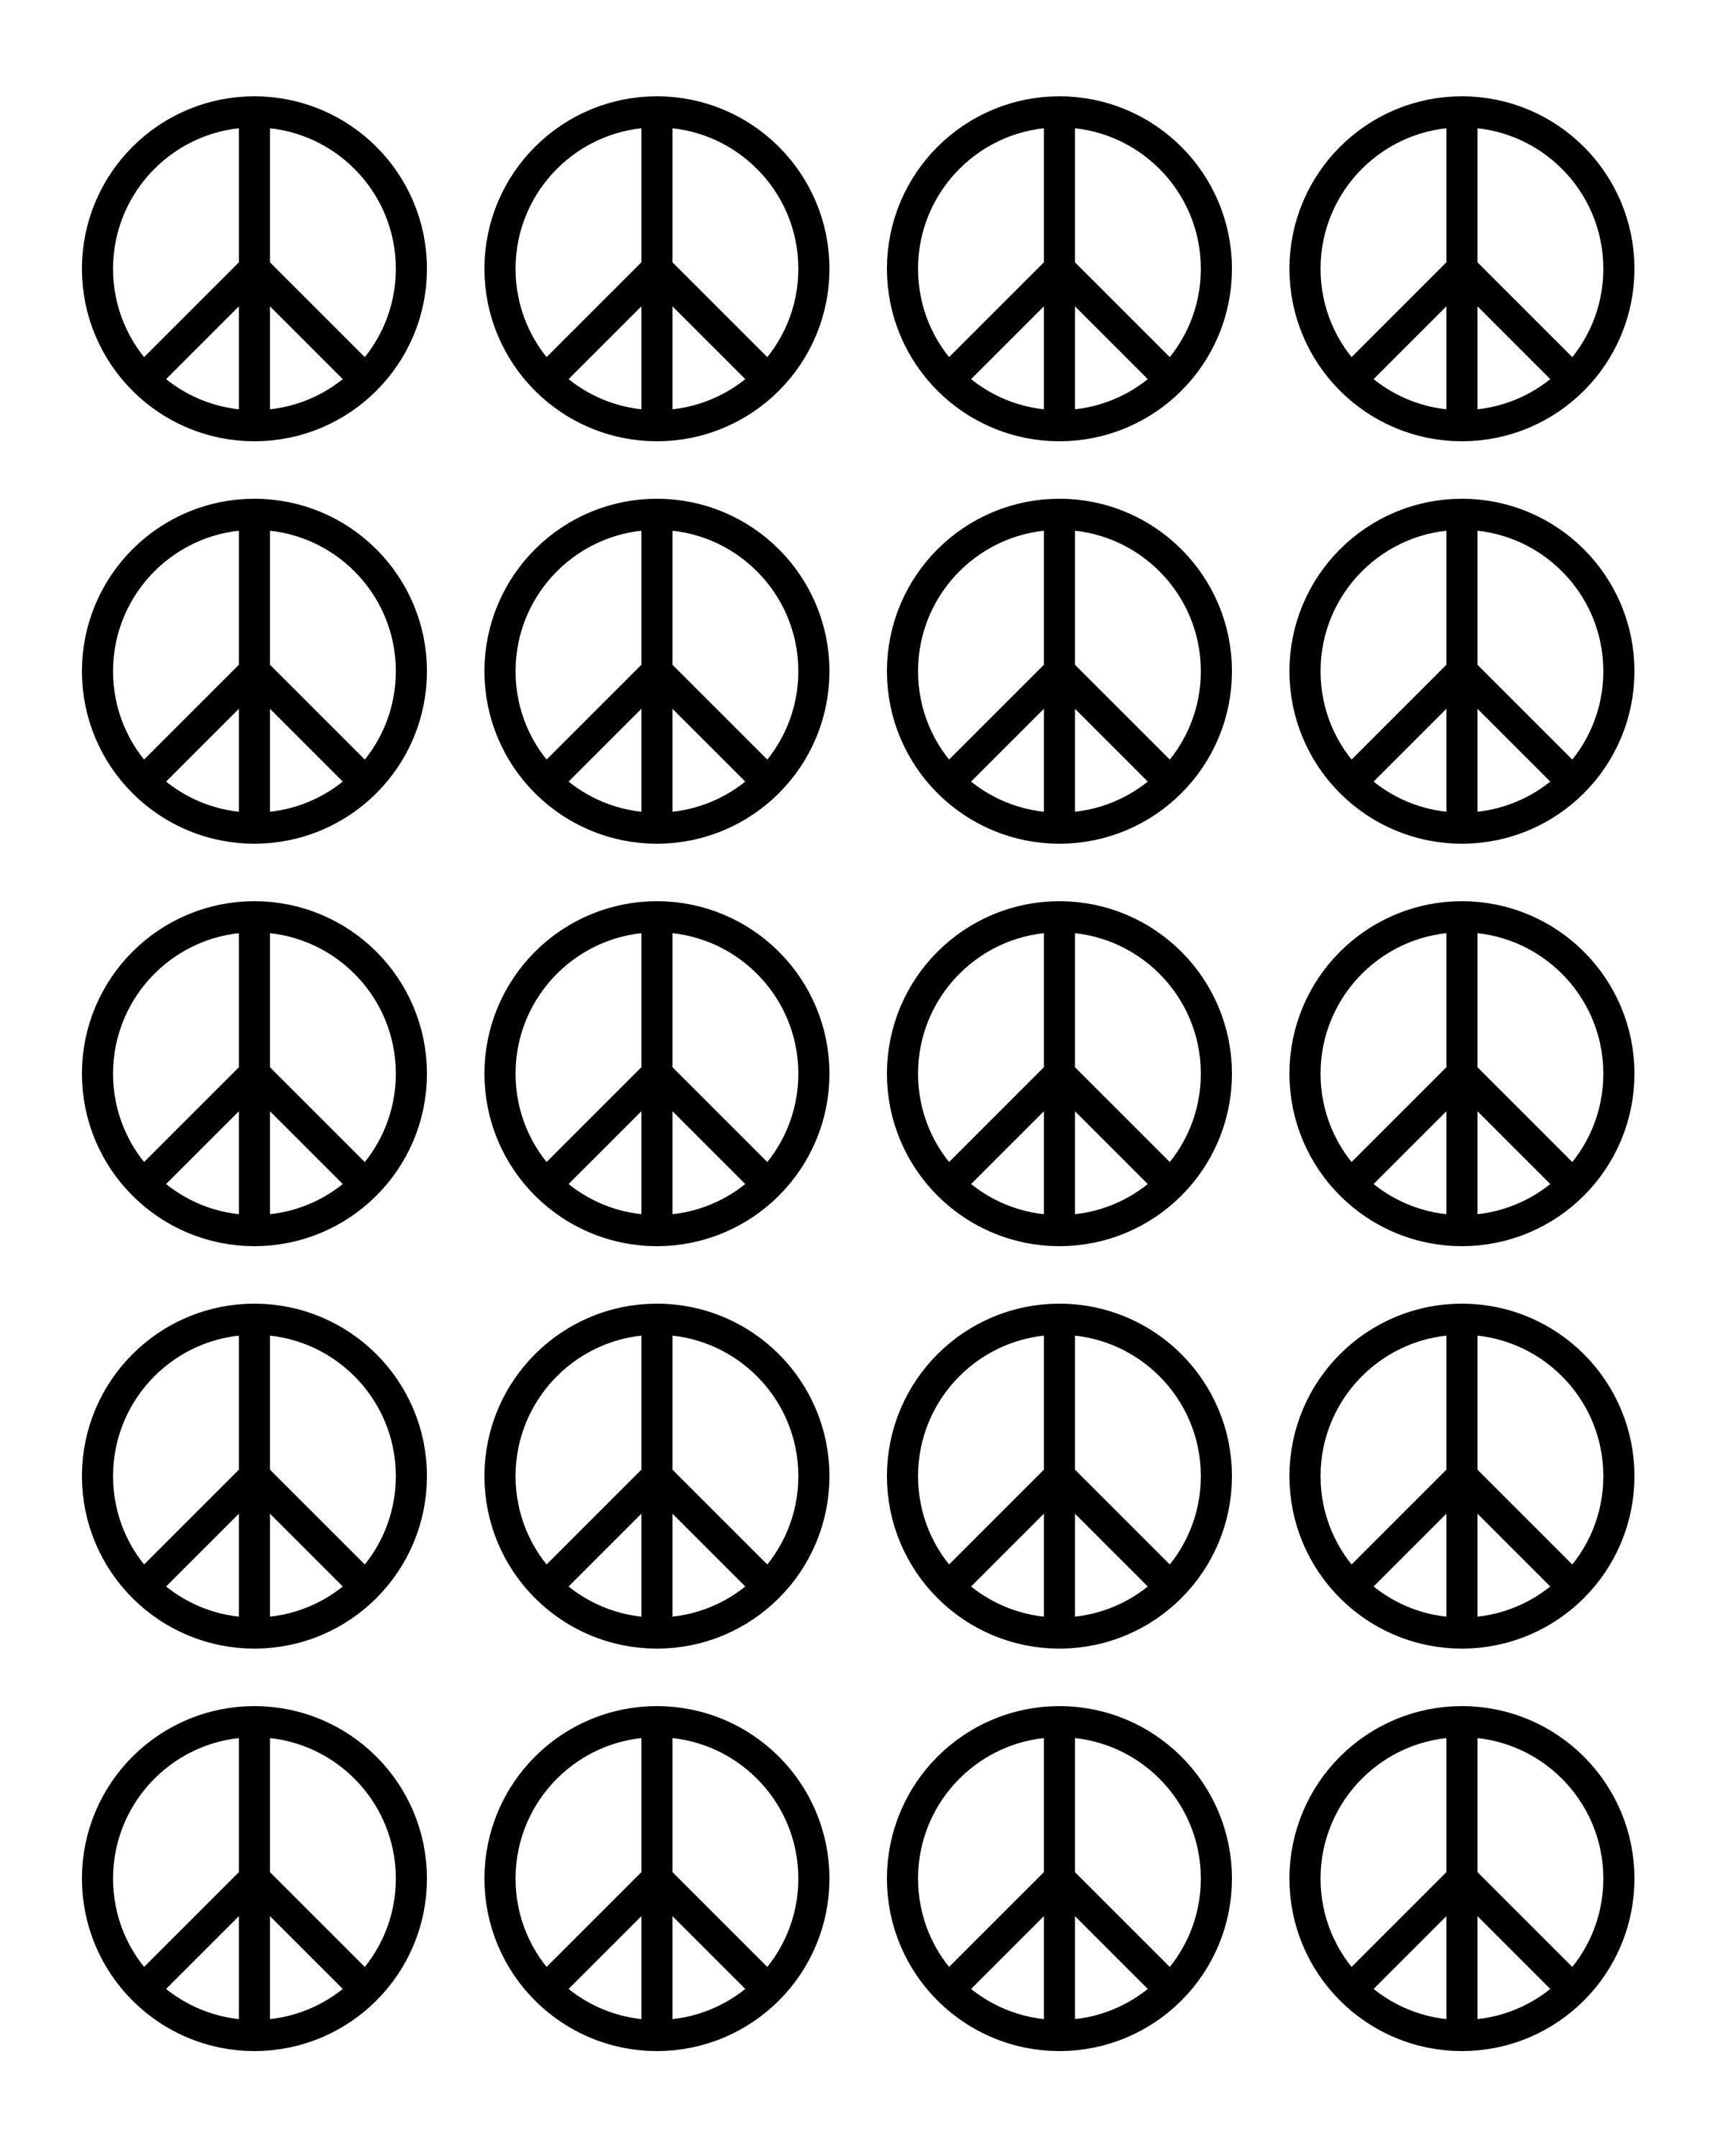 Created this template for piping melted chocolate into peace signs since I couldn t find